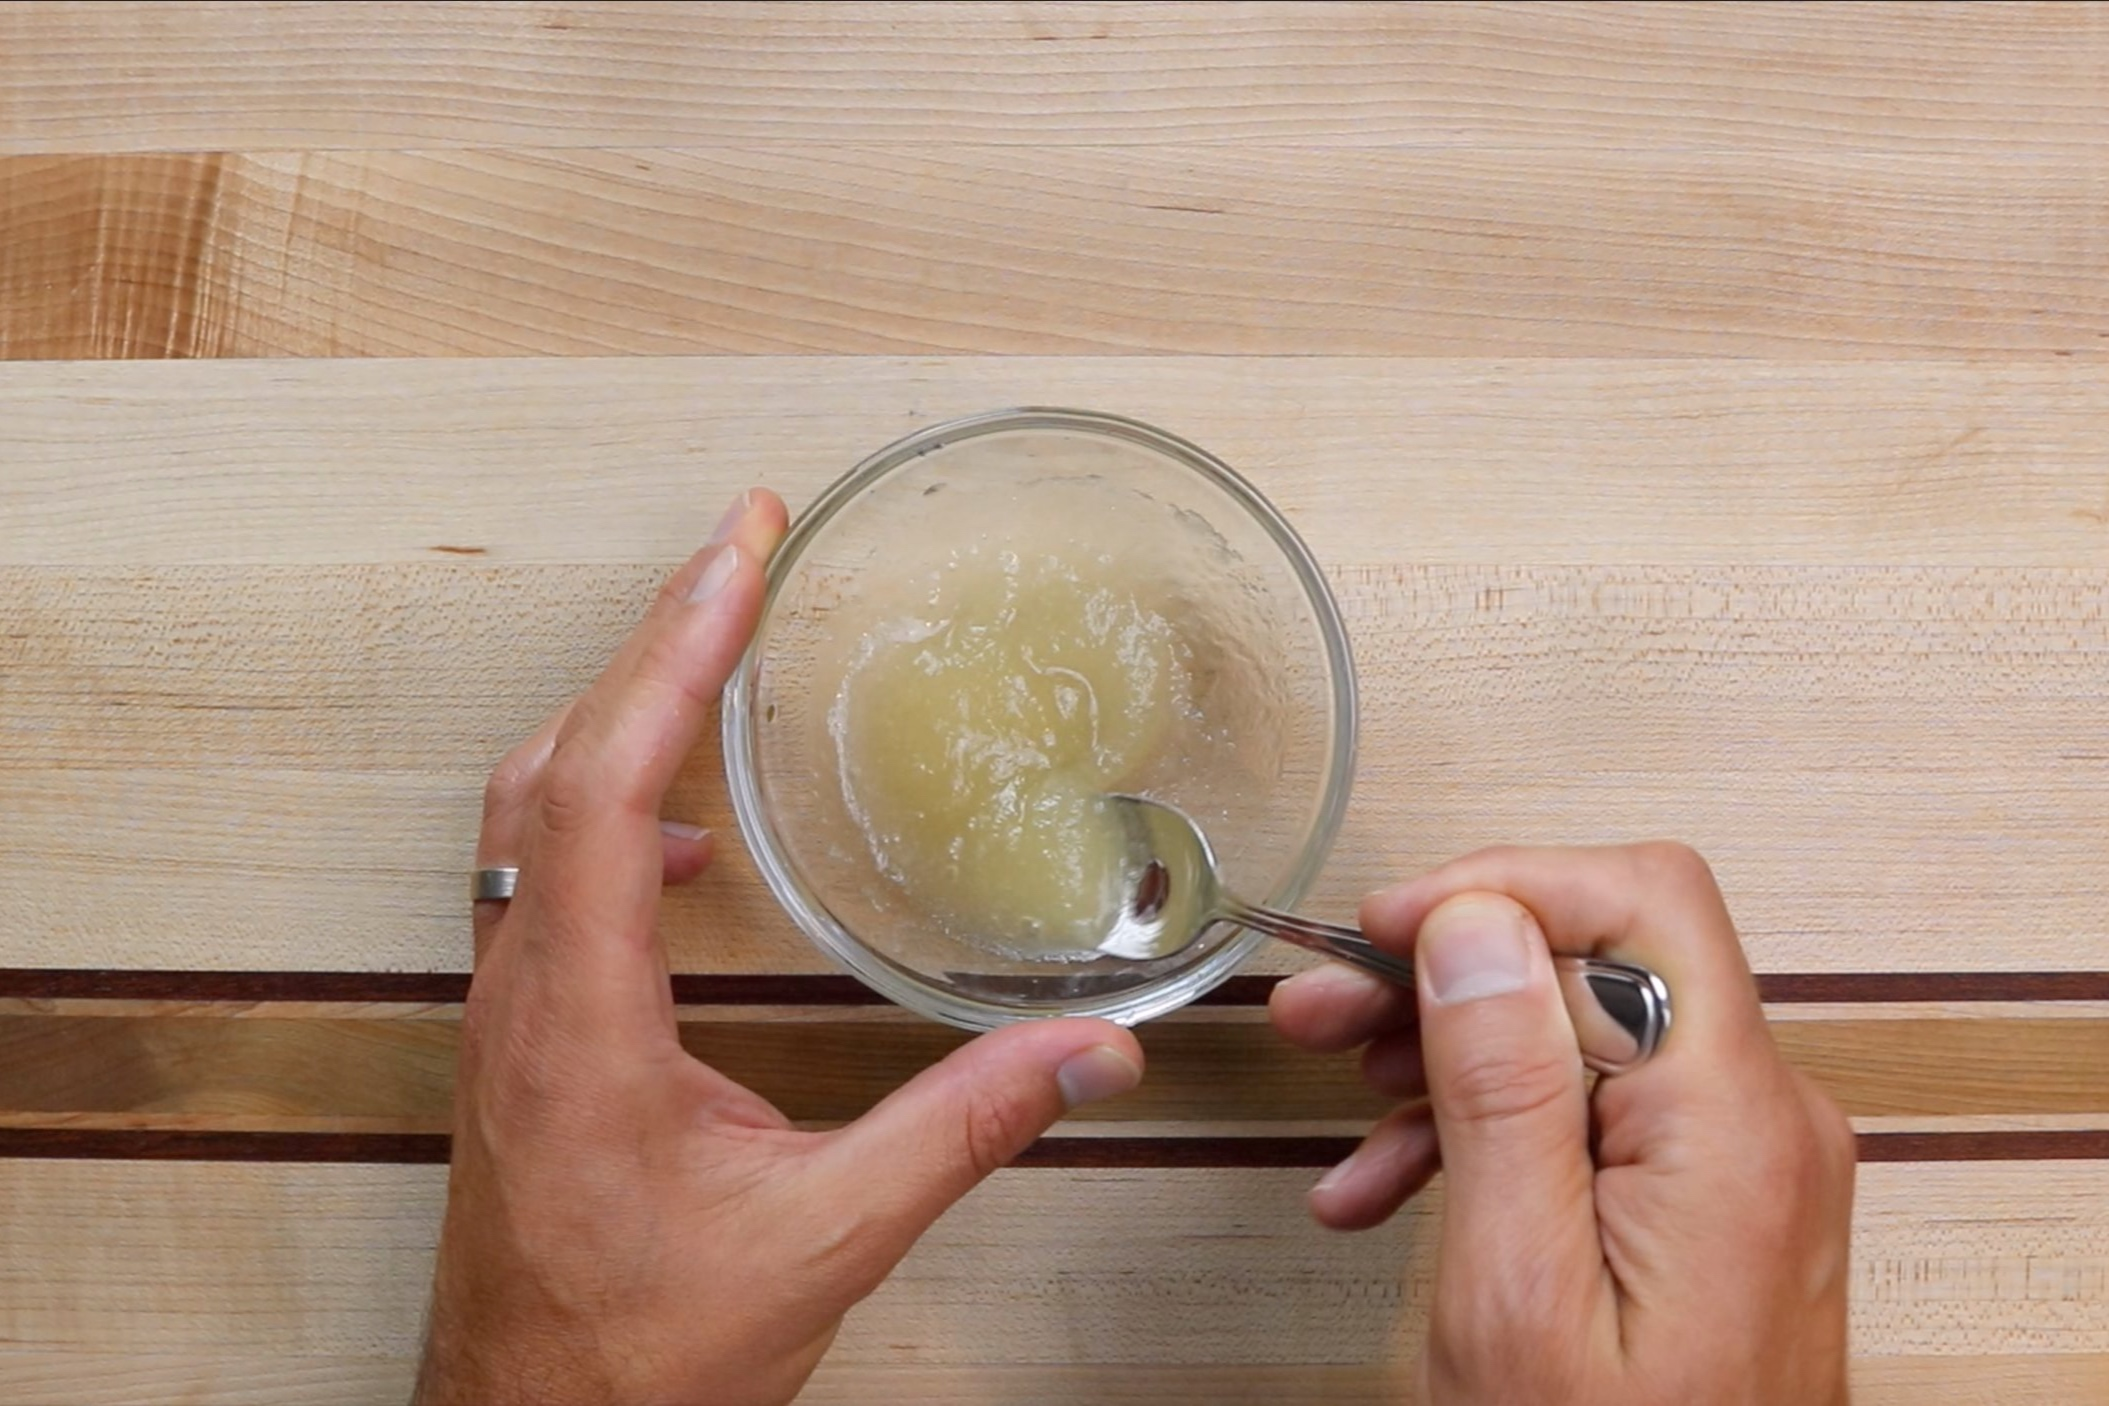 1. In a small bowl add the water. Sprinkle gelatin on top of water and stir gently until combined. Set aside. -